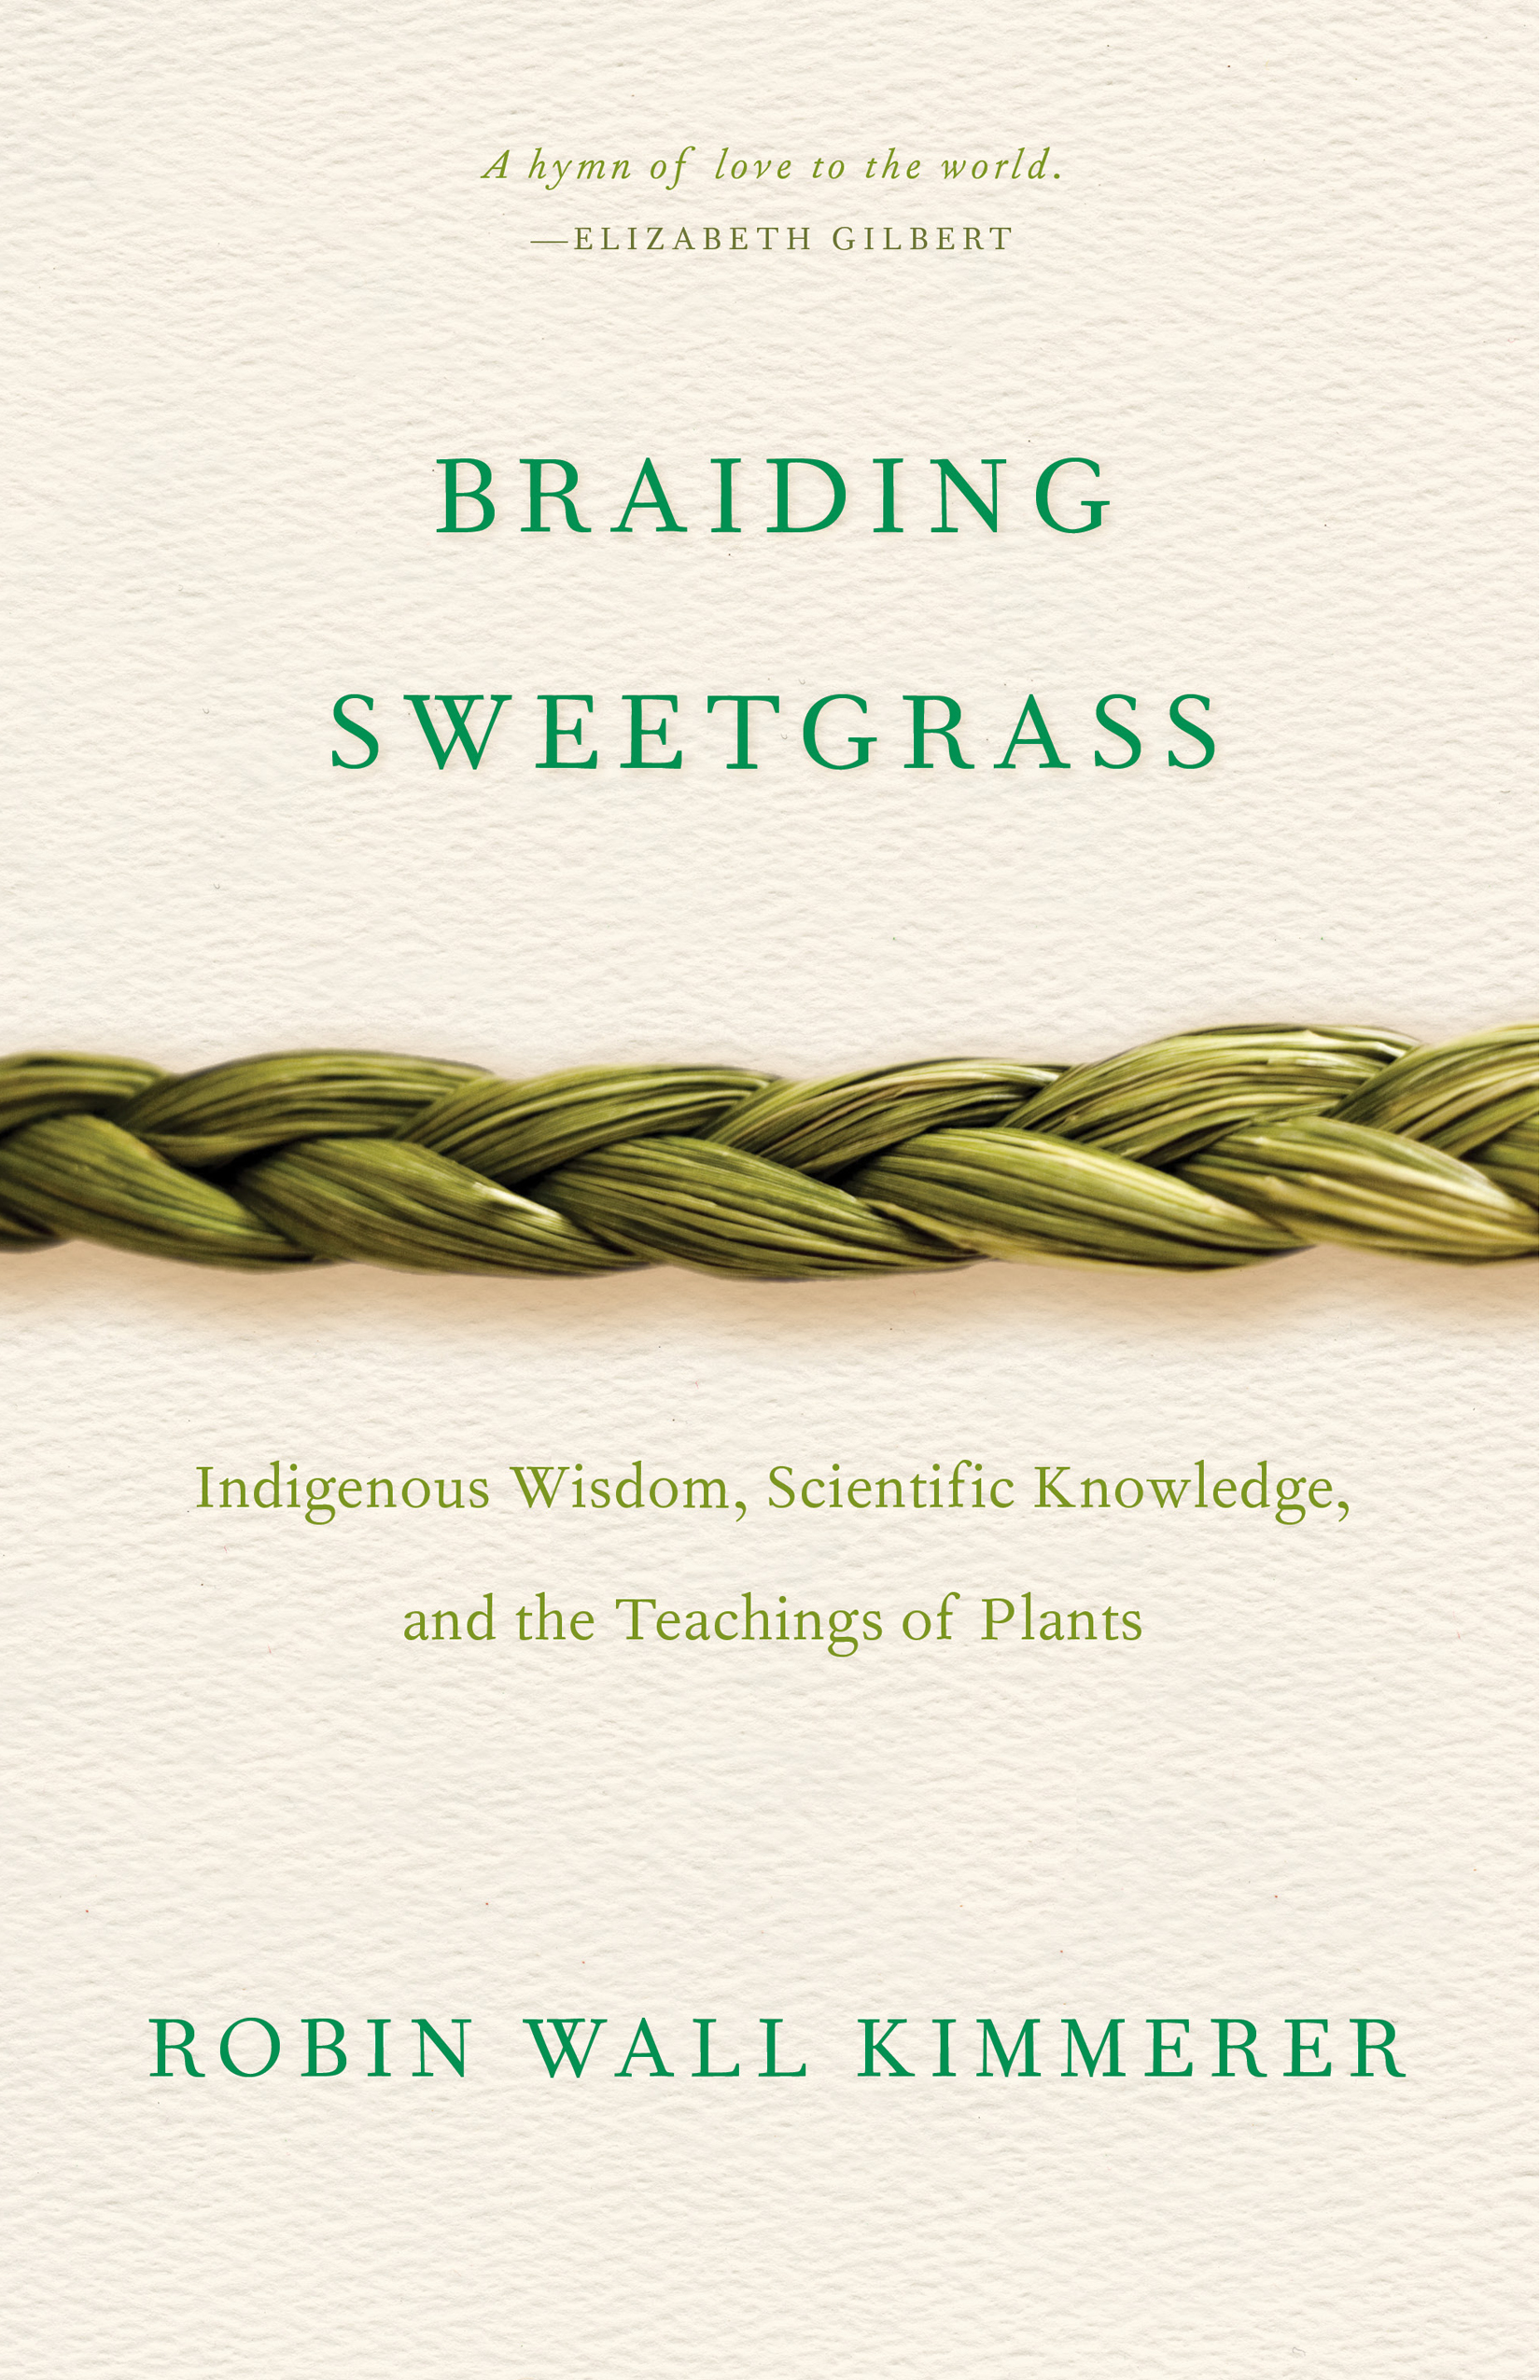 BraidingSweetgrass_PB_Cover_mech_Background_RGB_300 (2).jpg